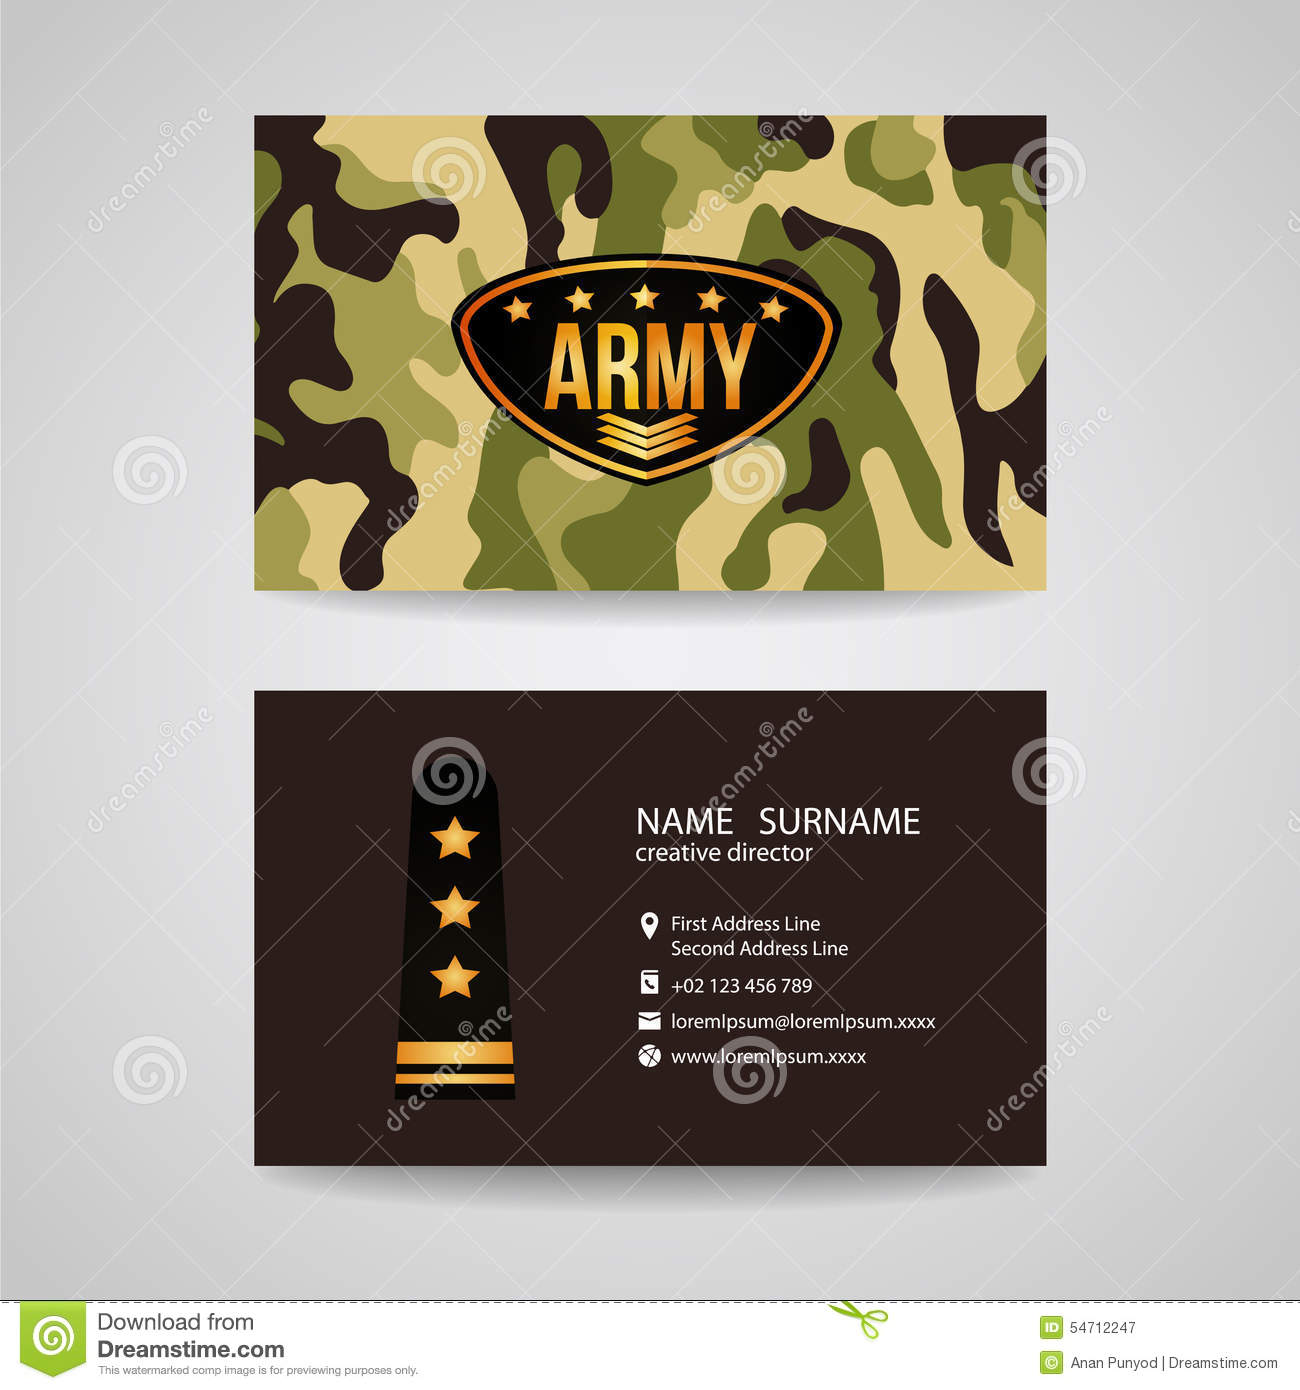 Business card template design for army and soldier texture stock business card template design for army and soldier texture wajeb Images